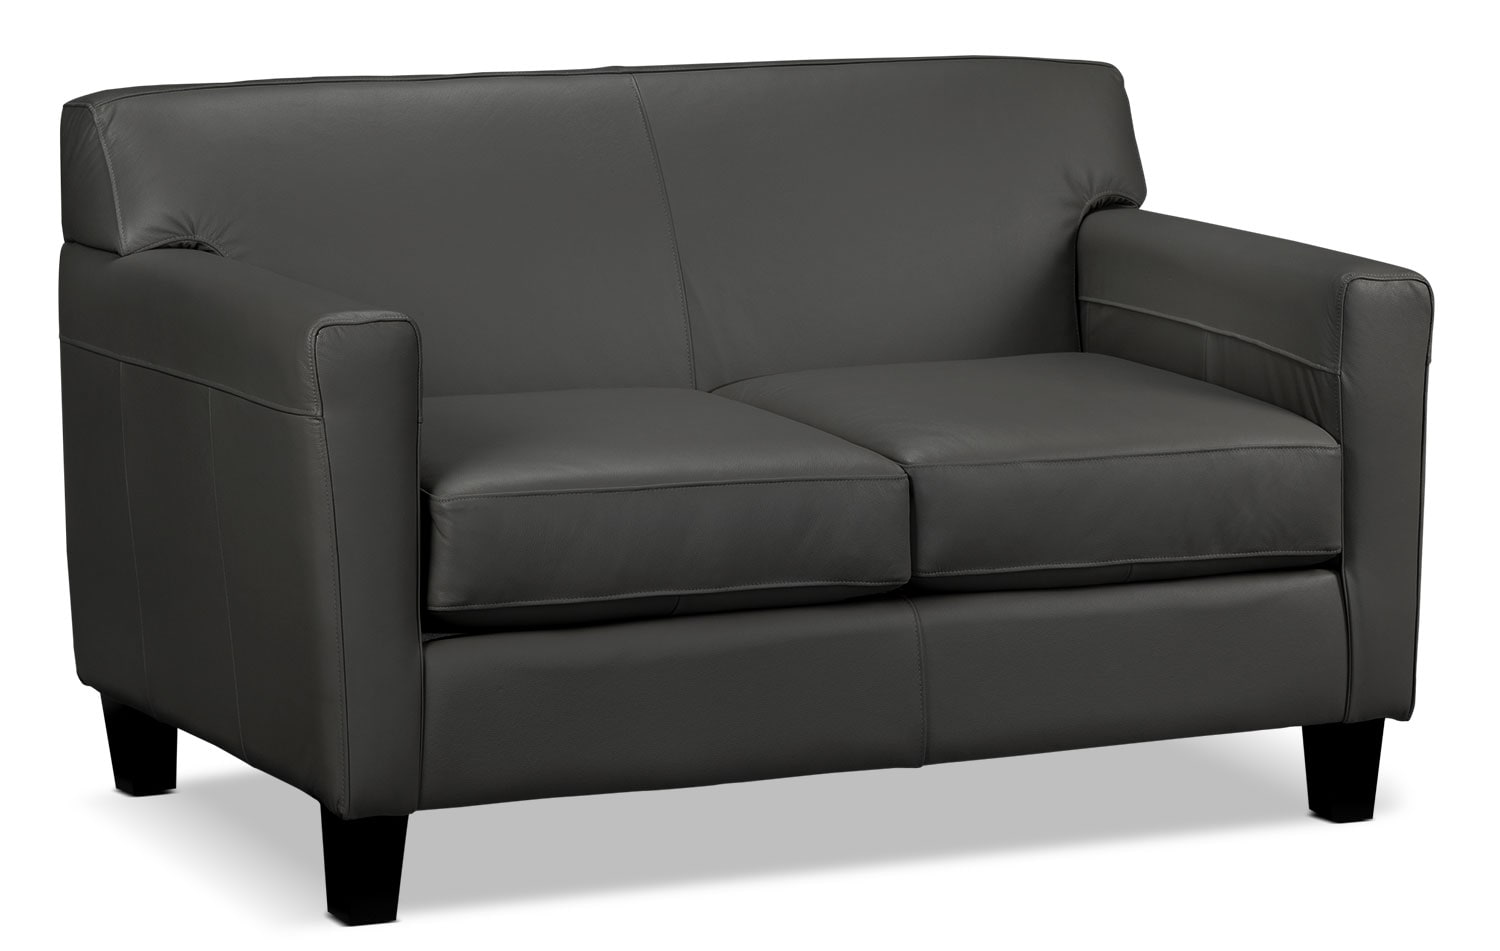 Whitney Loveseat - Dark Grey